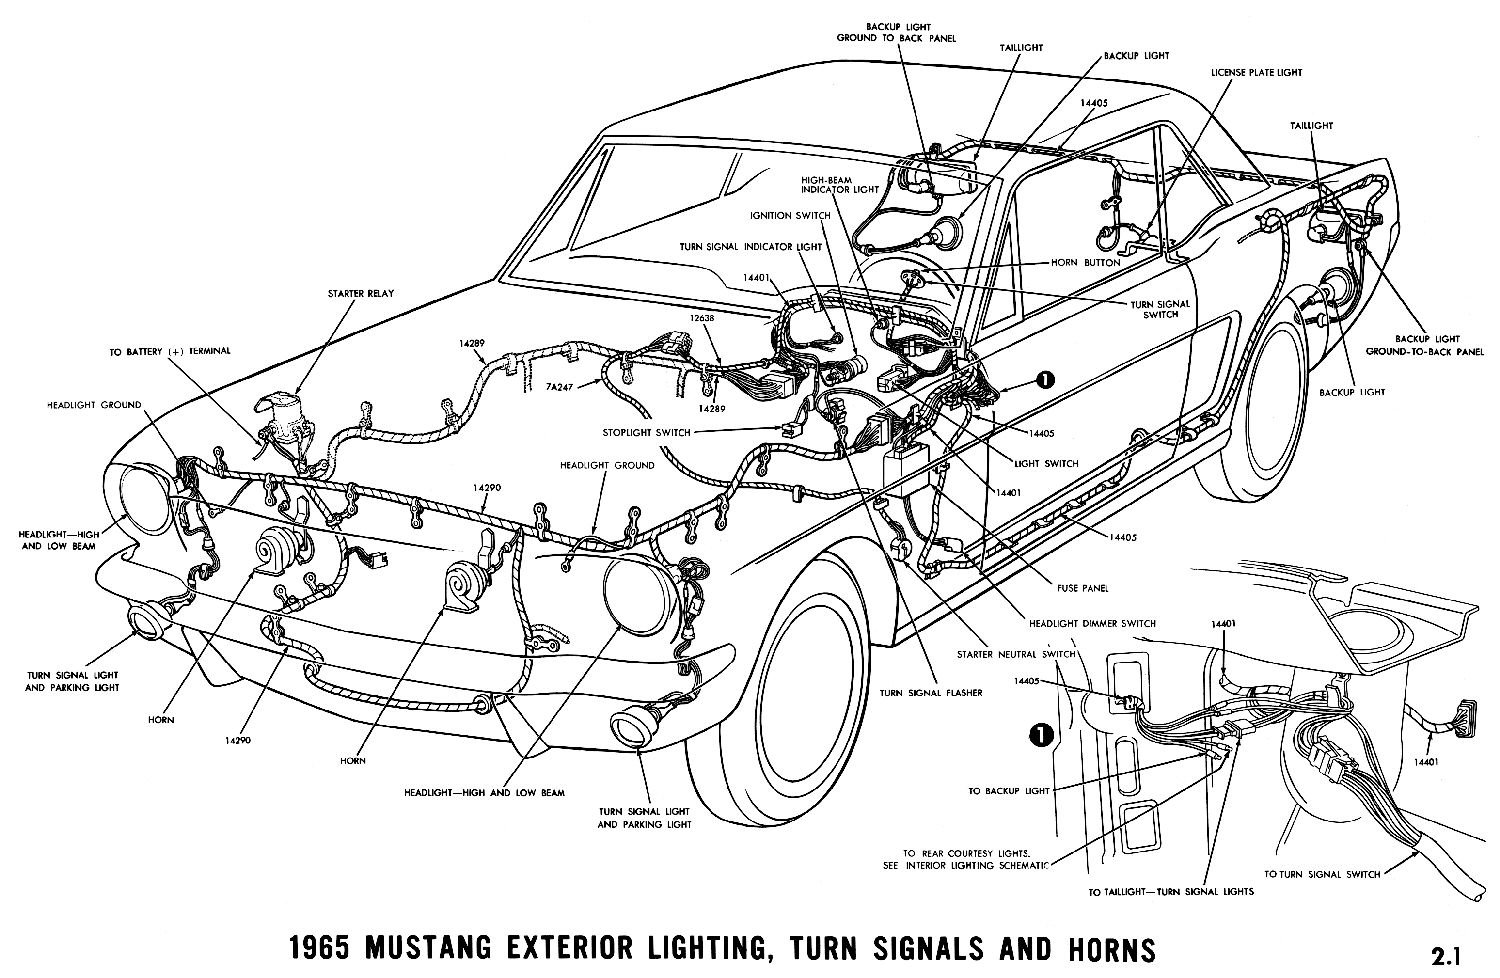 D Fuse Block Mustang Coupe D on 1968 mustang wiring diagram